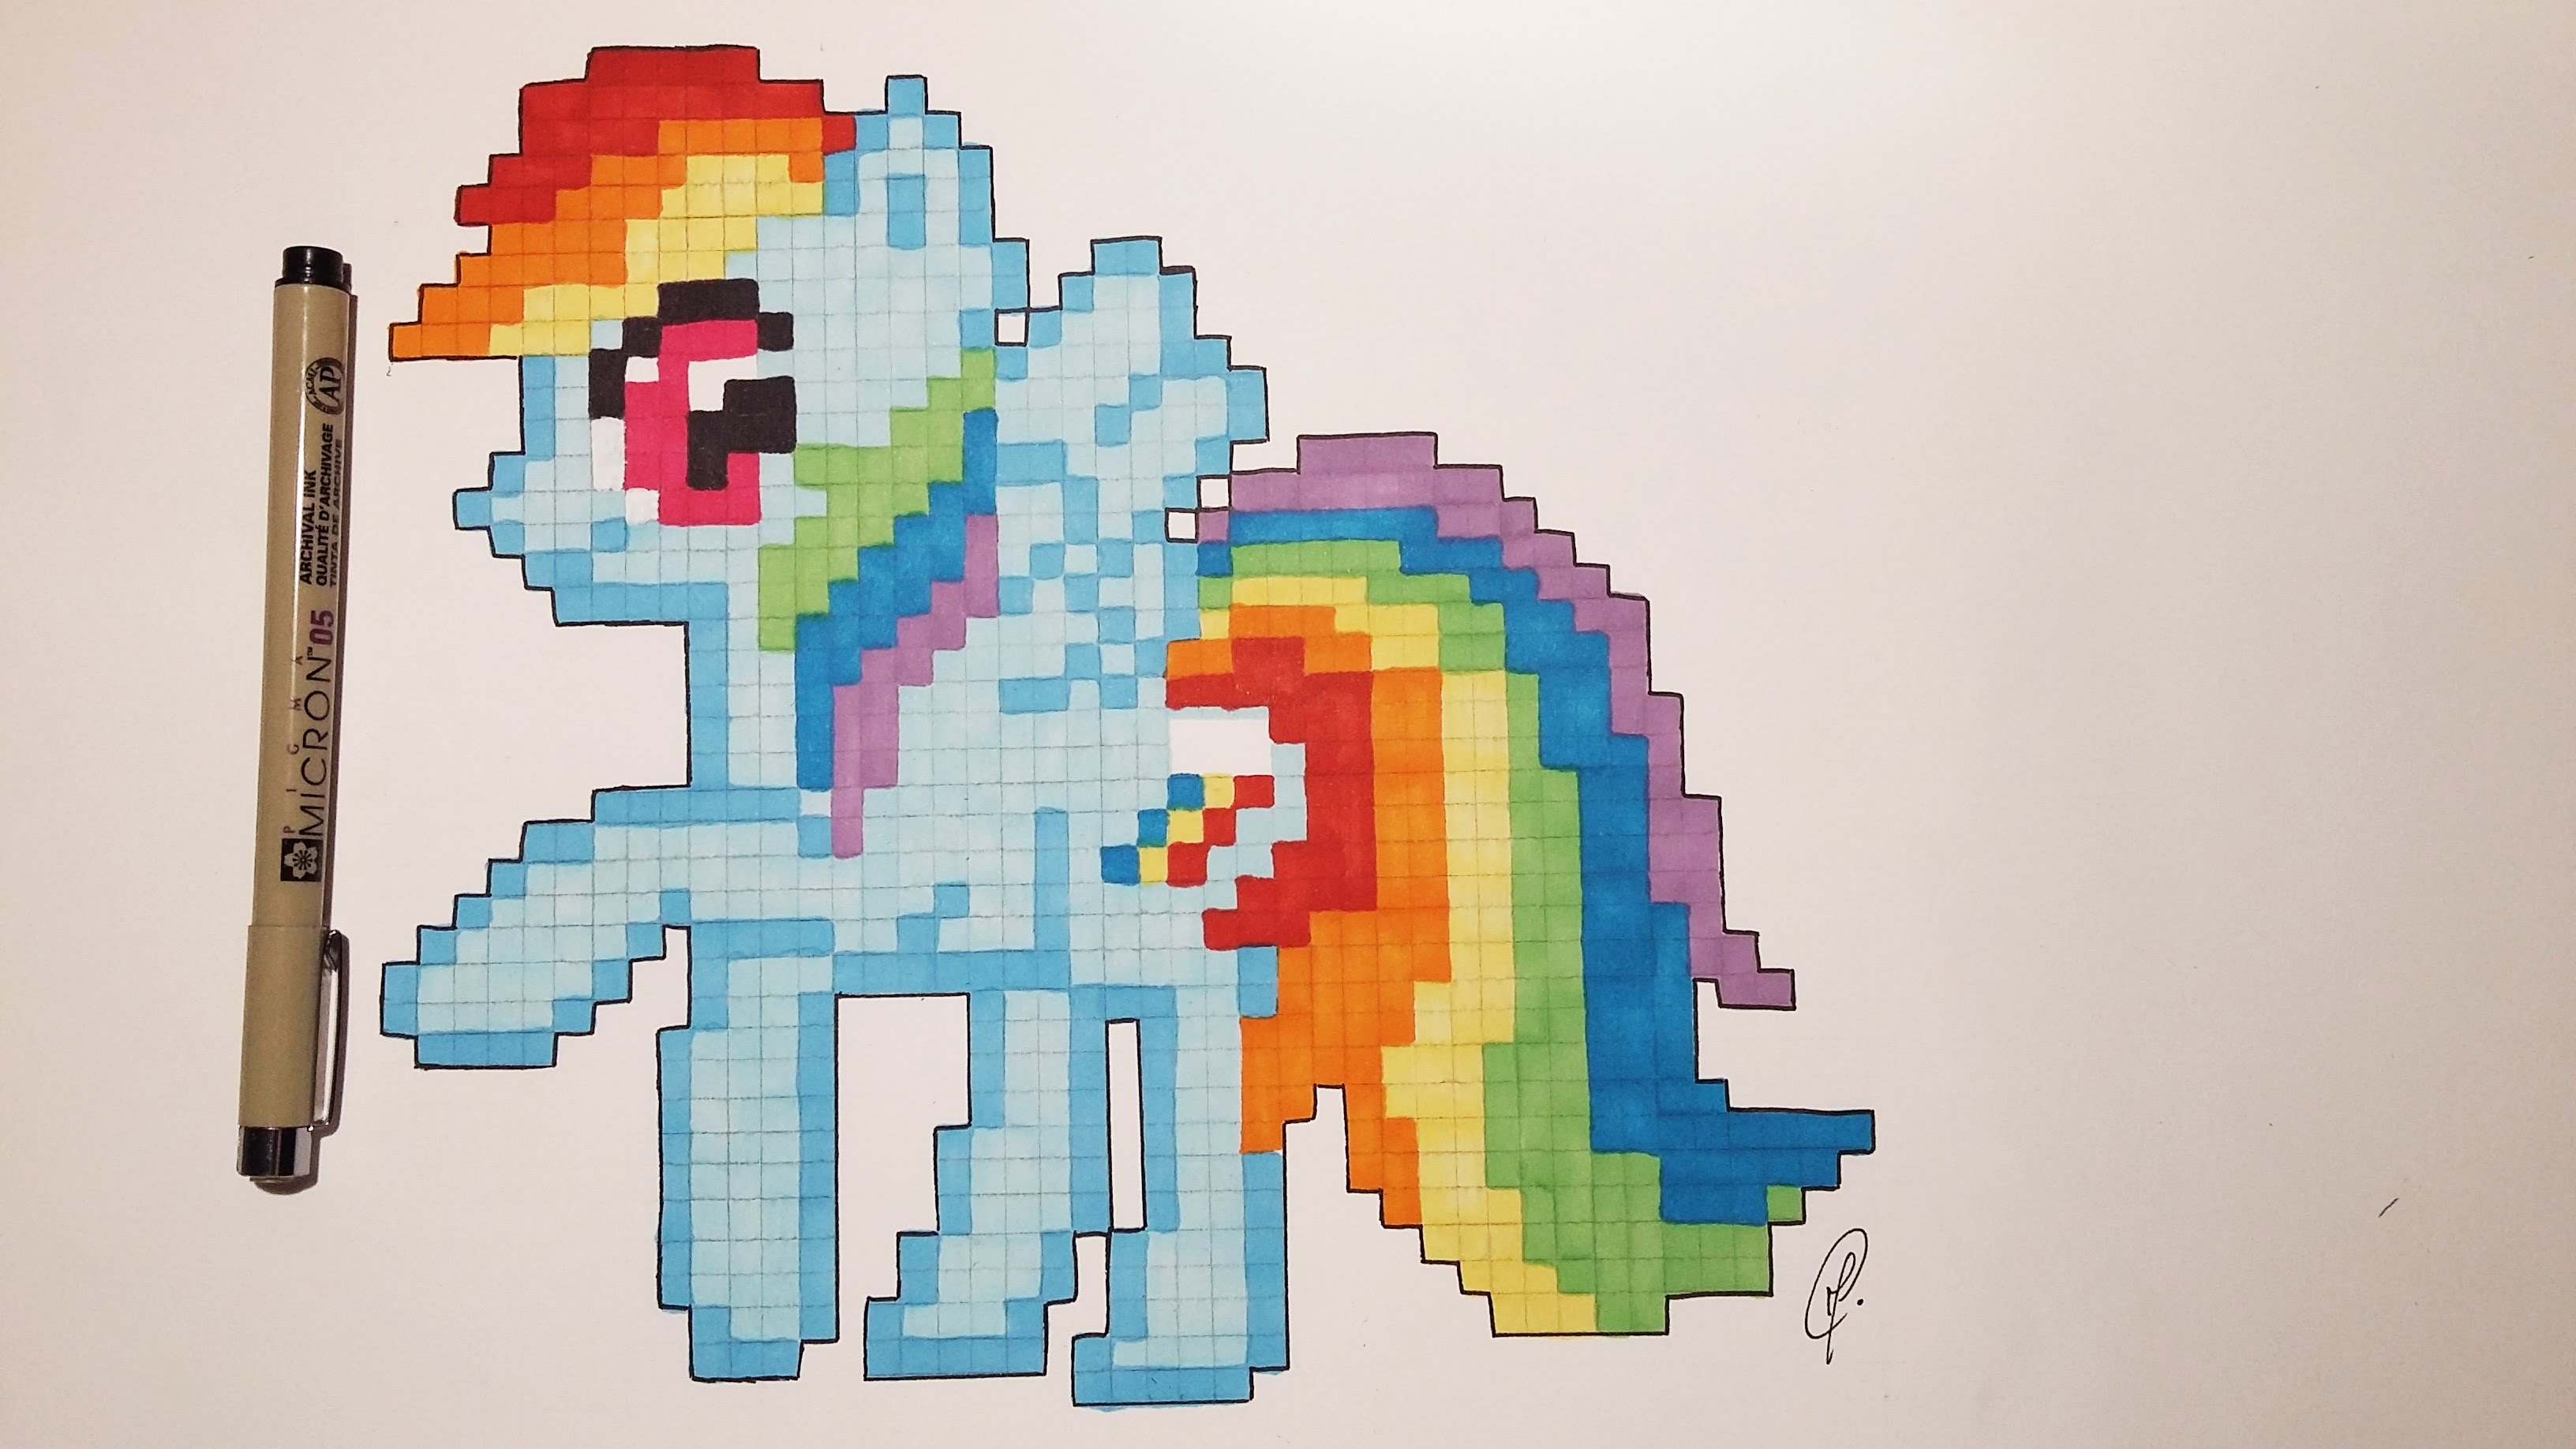 3264x1836 How To Draw Little Pony Rainbow Dash With Pixels